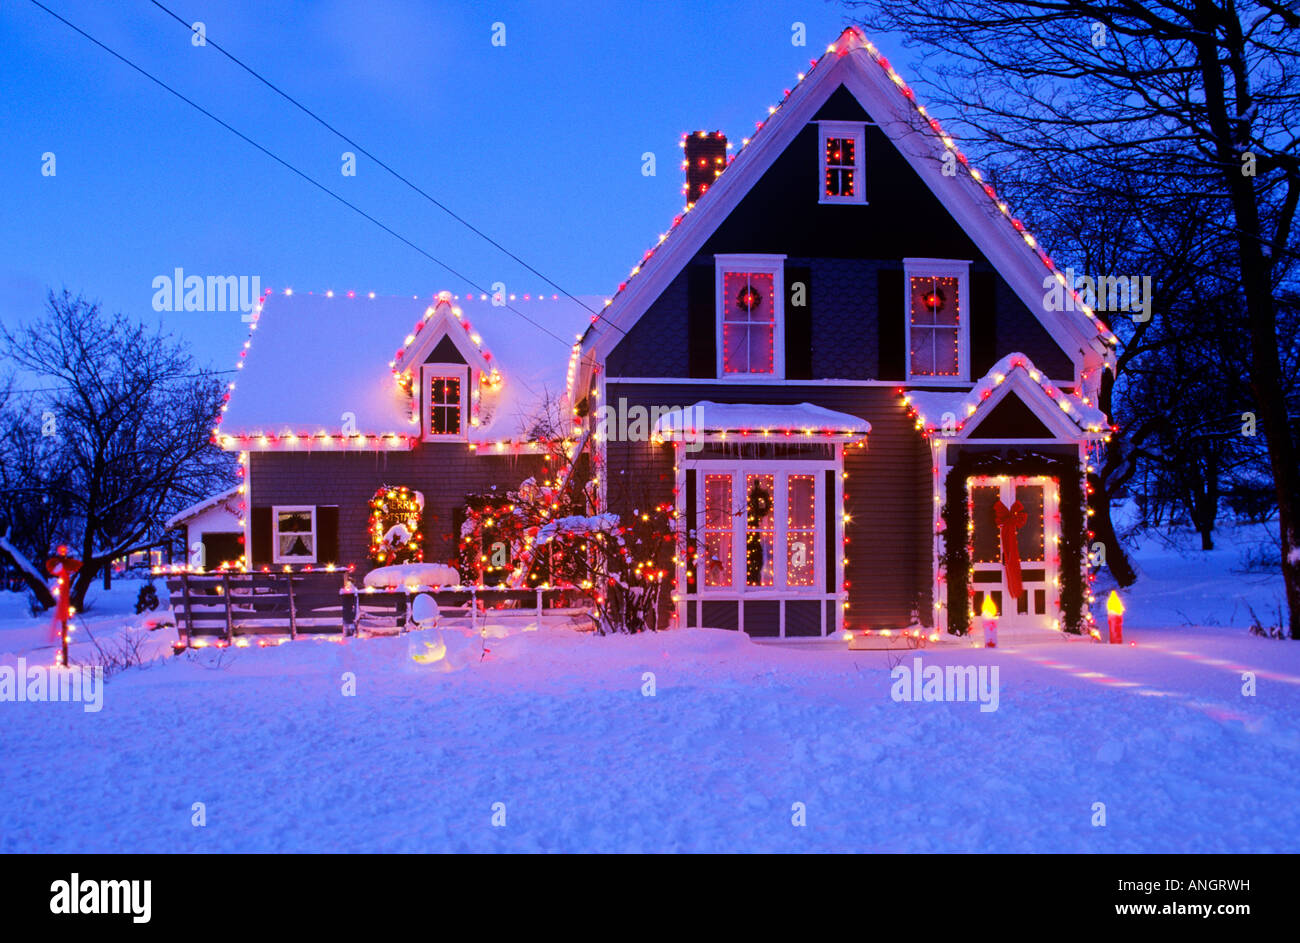 Christmas Homes Decorated Home Decorated For Christmas Crapaud Prince Edward